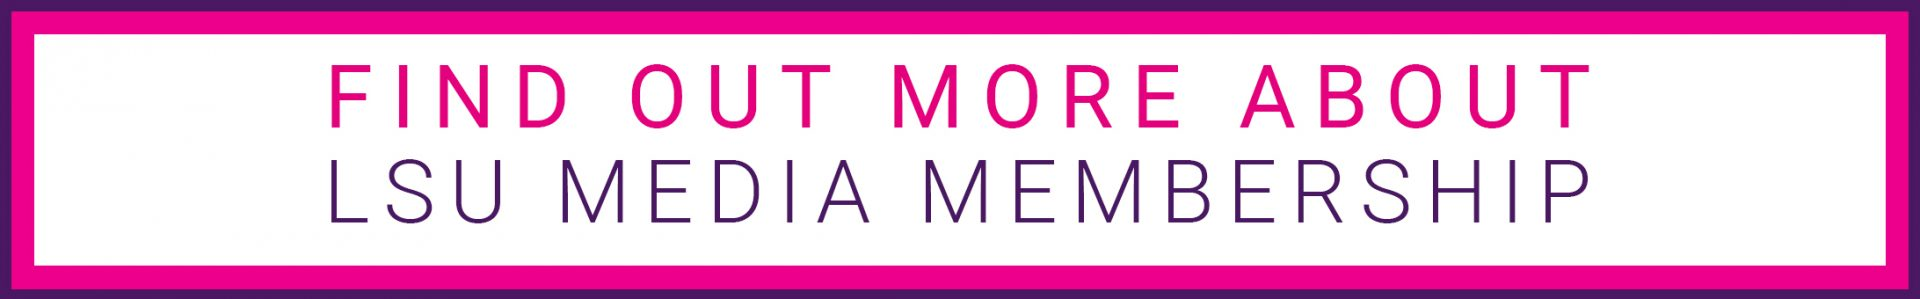 Find out more about Media Membership